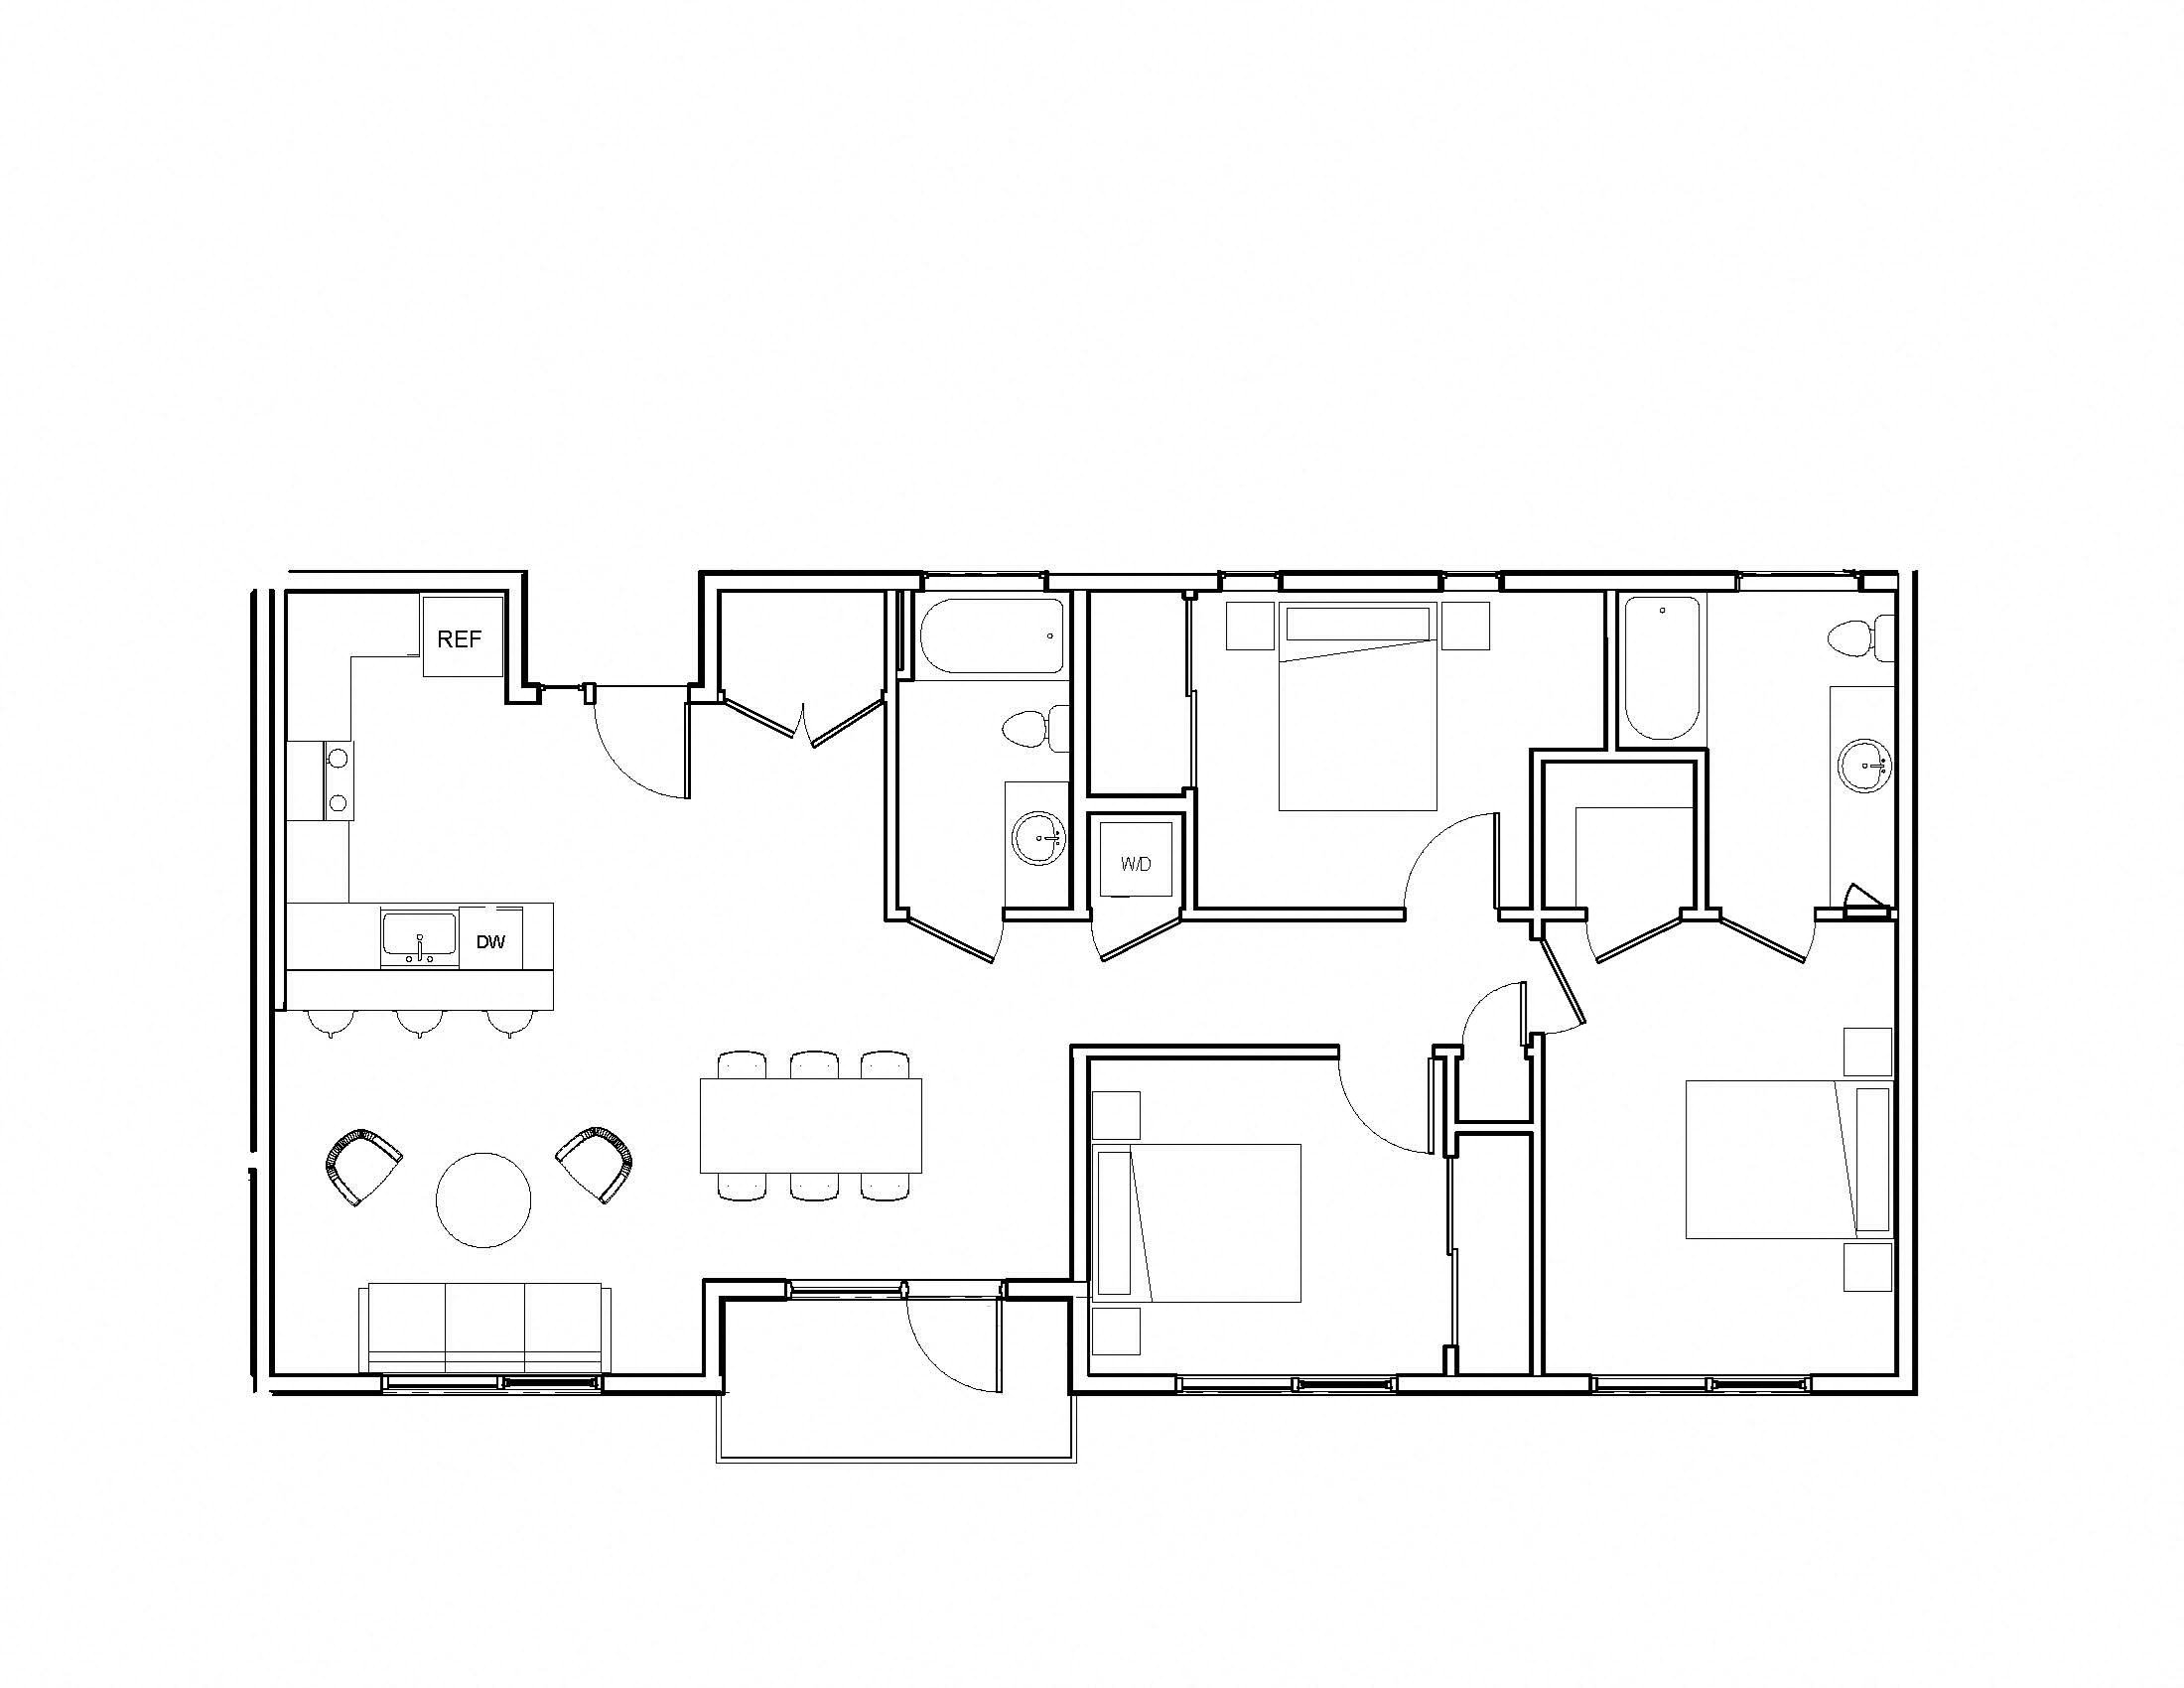 Brand new community luxury modern apartment leasing loft three bedroom gated close to bart BART